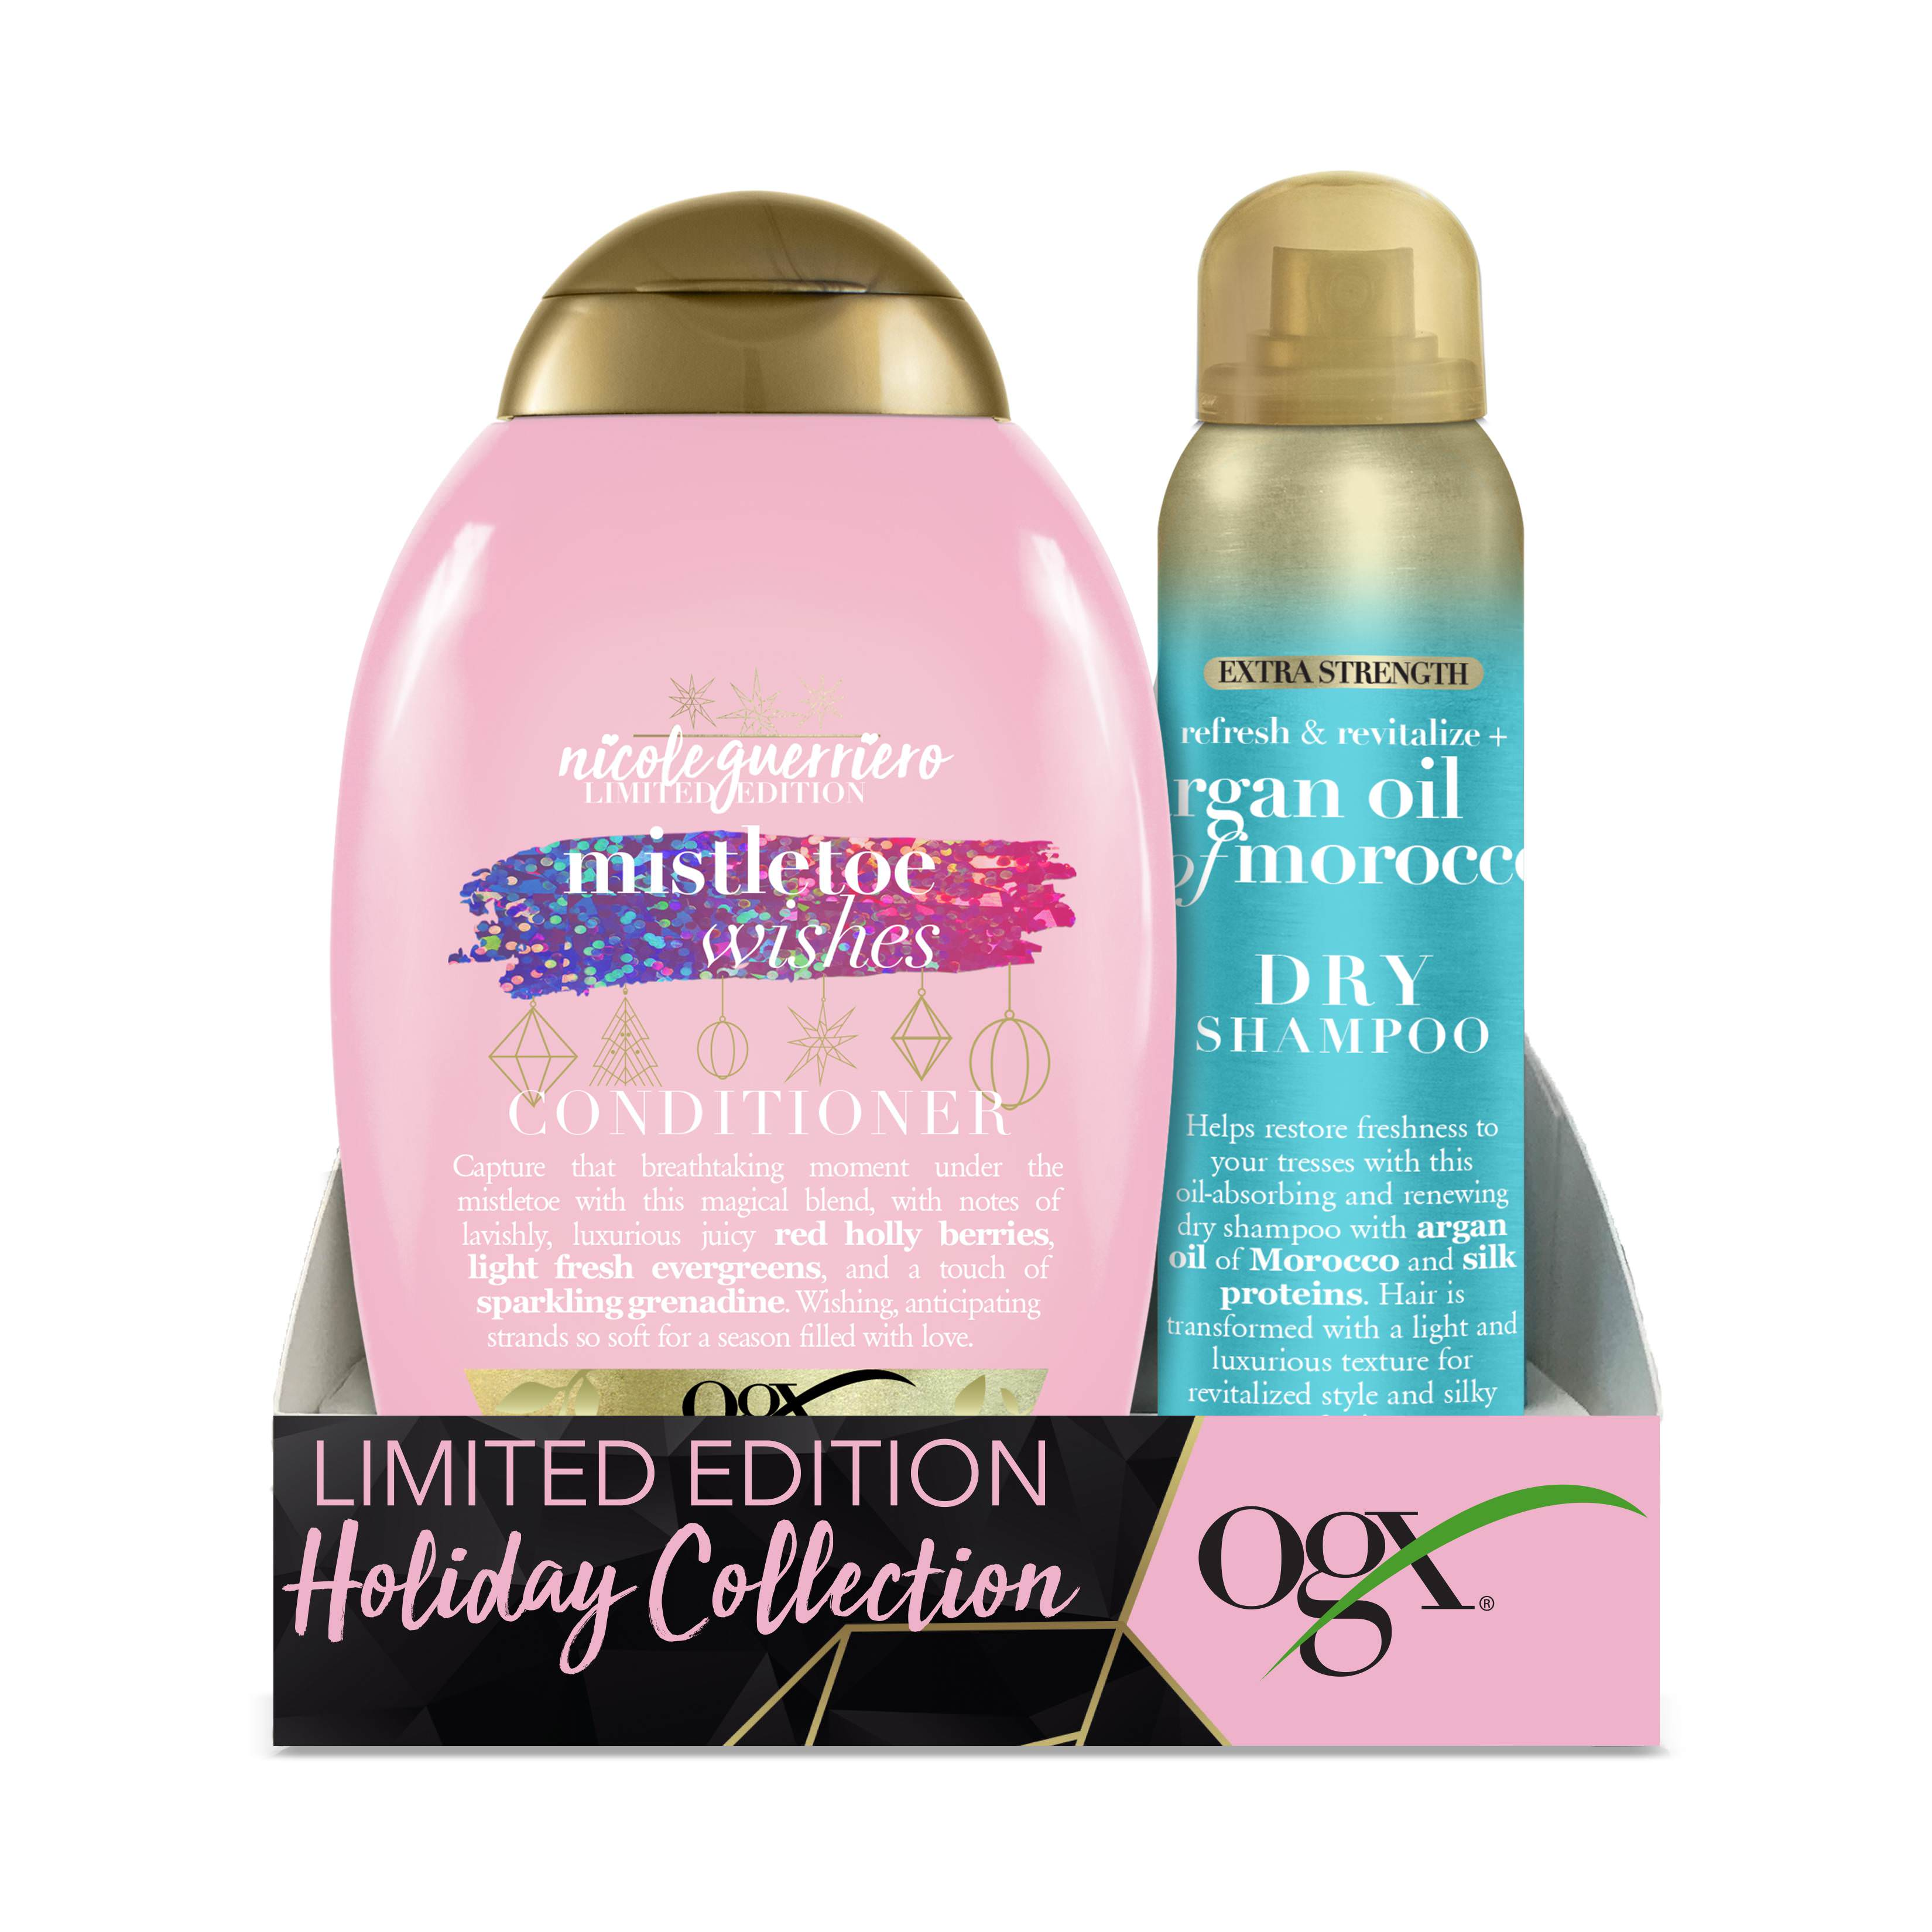 Ogx Mistletoe Wishes Conditioner & Argan Oil Of Morocco Extra Strength Dry Shampoo Holiday Set ($10.96 Value)